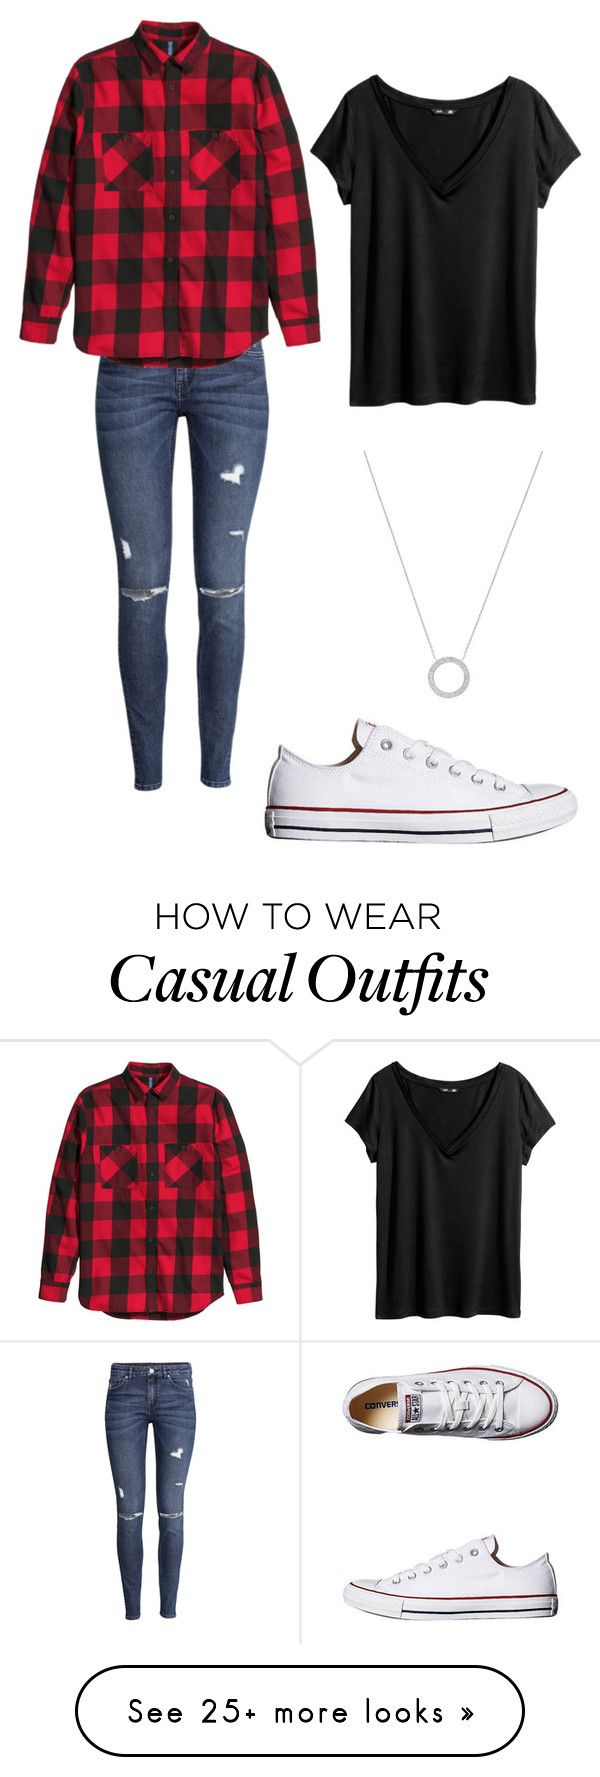 """Casual Outfit"" by kittychloe on Polyvore featuring H&M, Converse and Michael Kors"